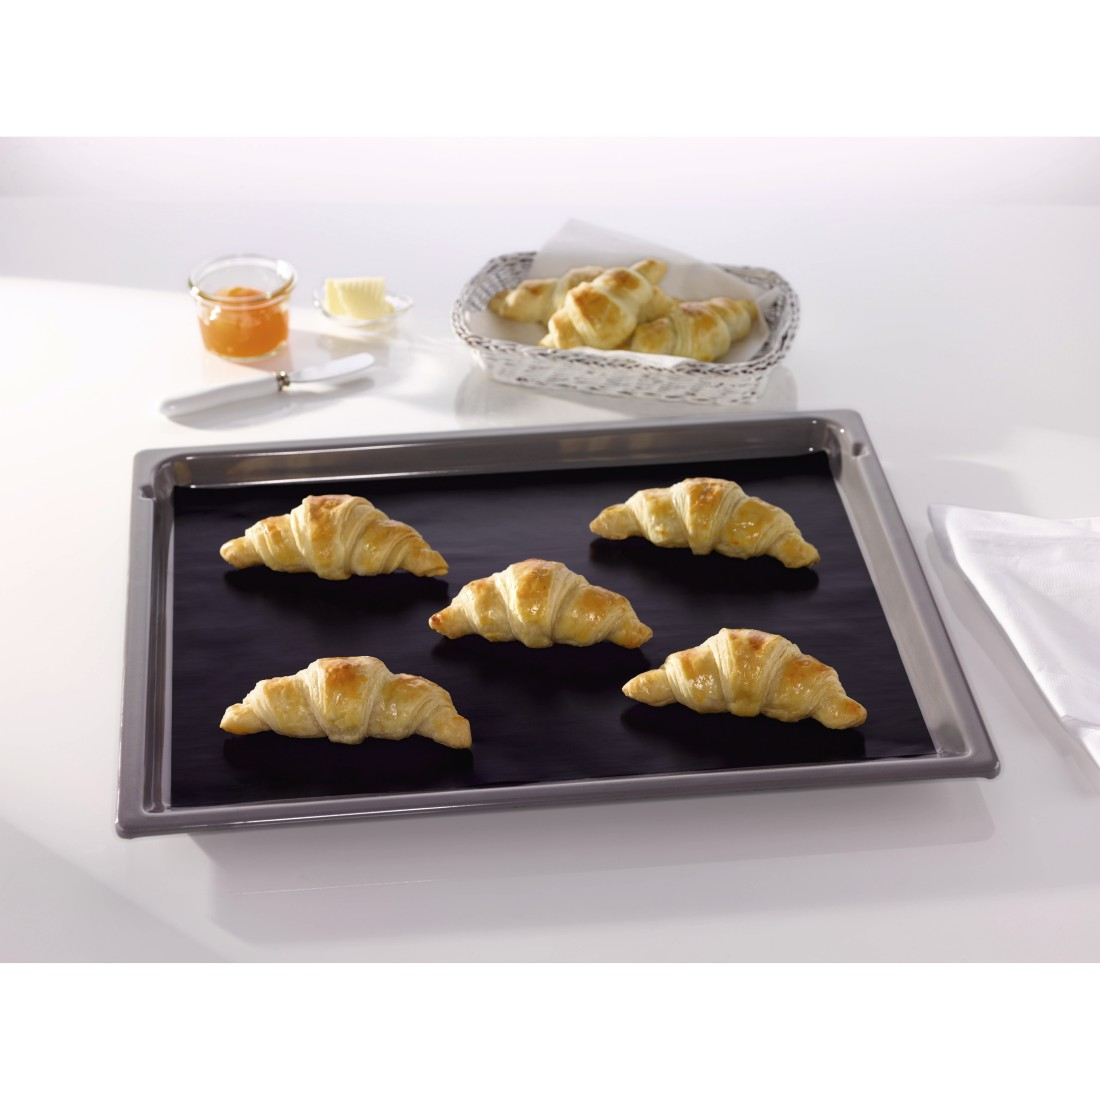 00111495 Xavax Reusable Baking Foil Can Be Trimmed To